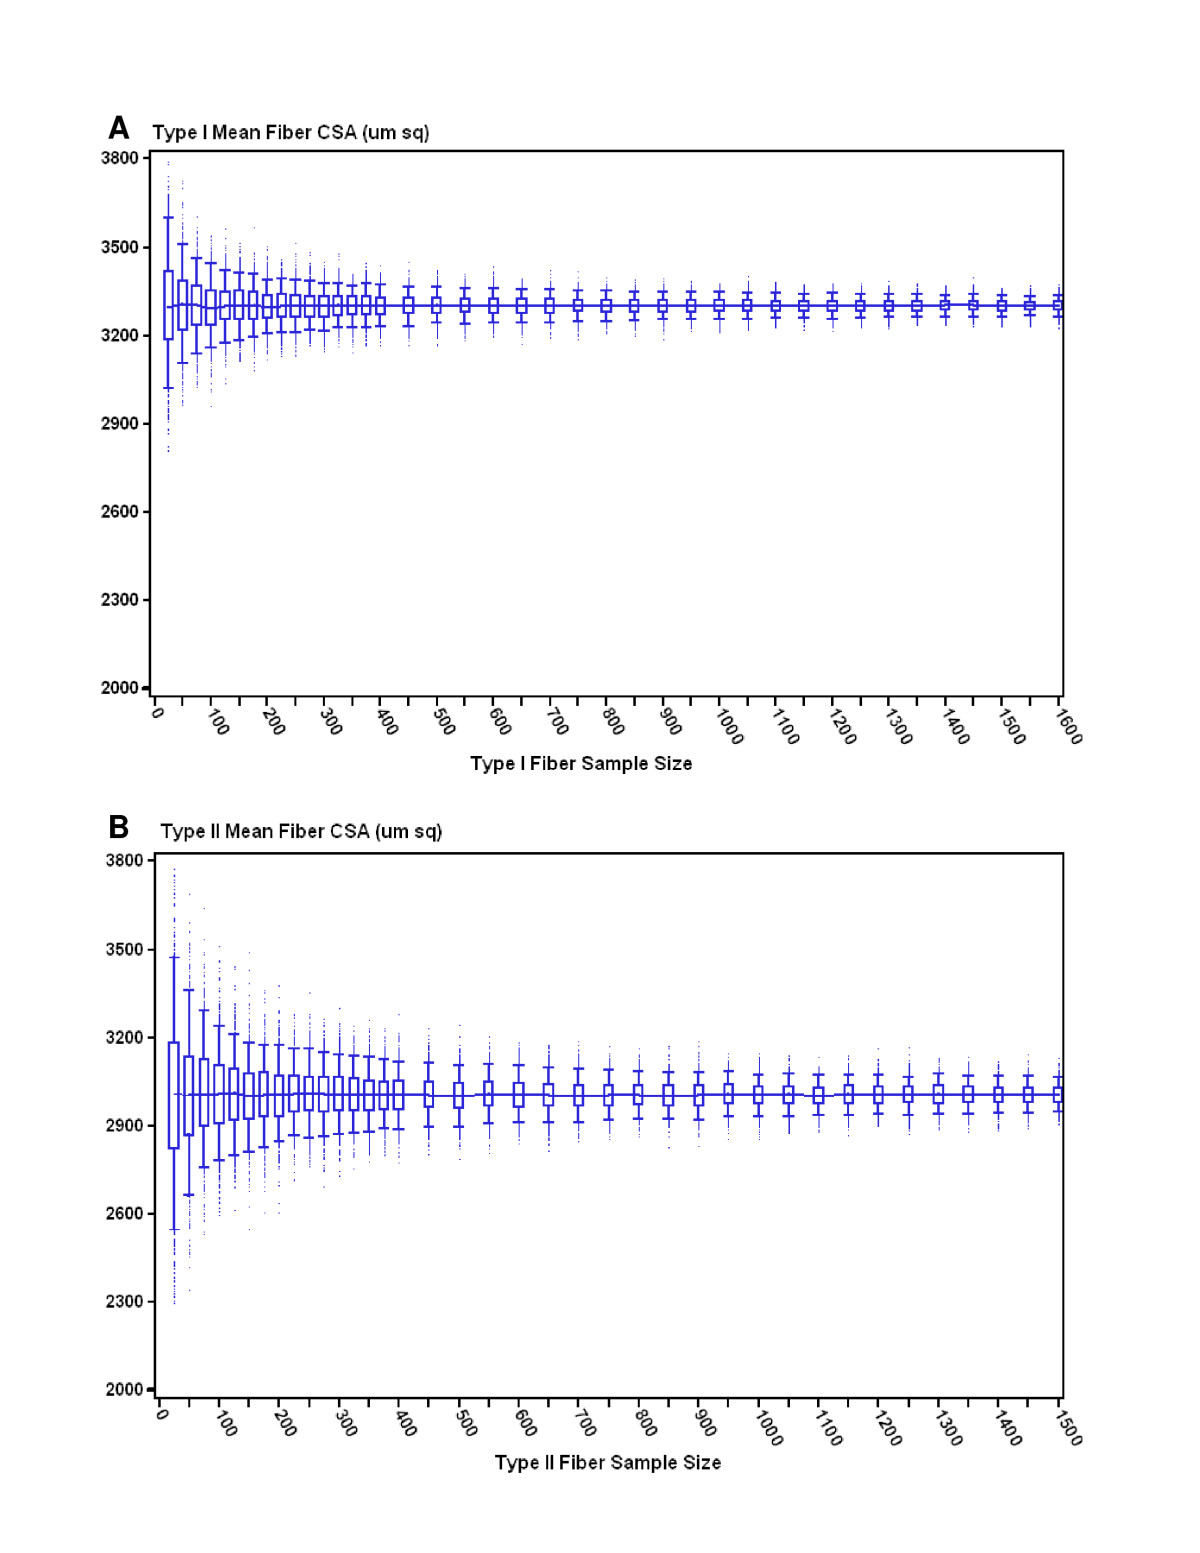 https://static-content.springer.com/image/art%3A10.1186%2F1480-9222-15-6/MediaObjects/12575_2013_Article_26_Fig1_HTML.jpg